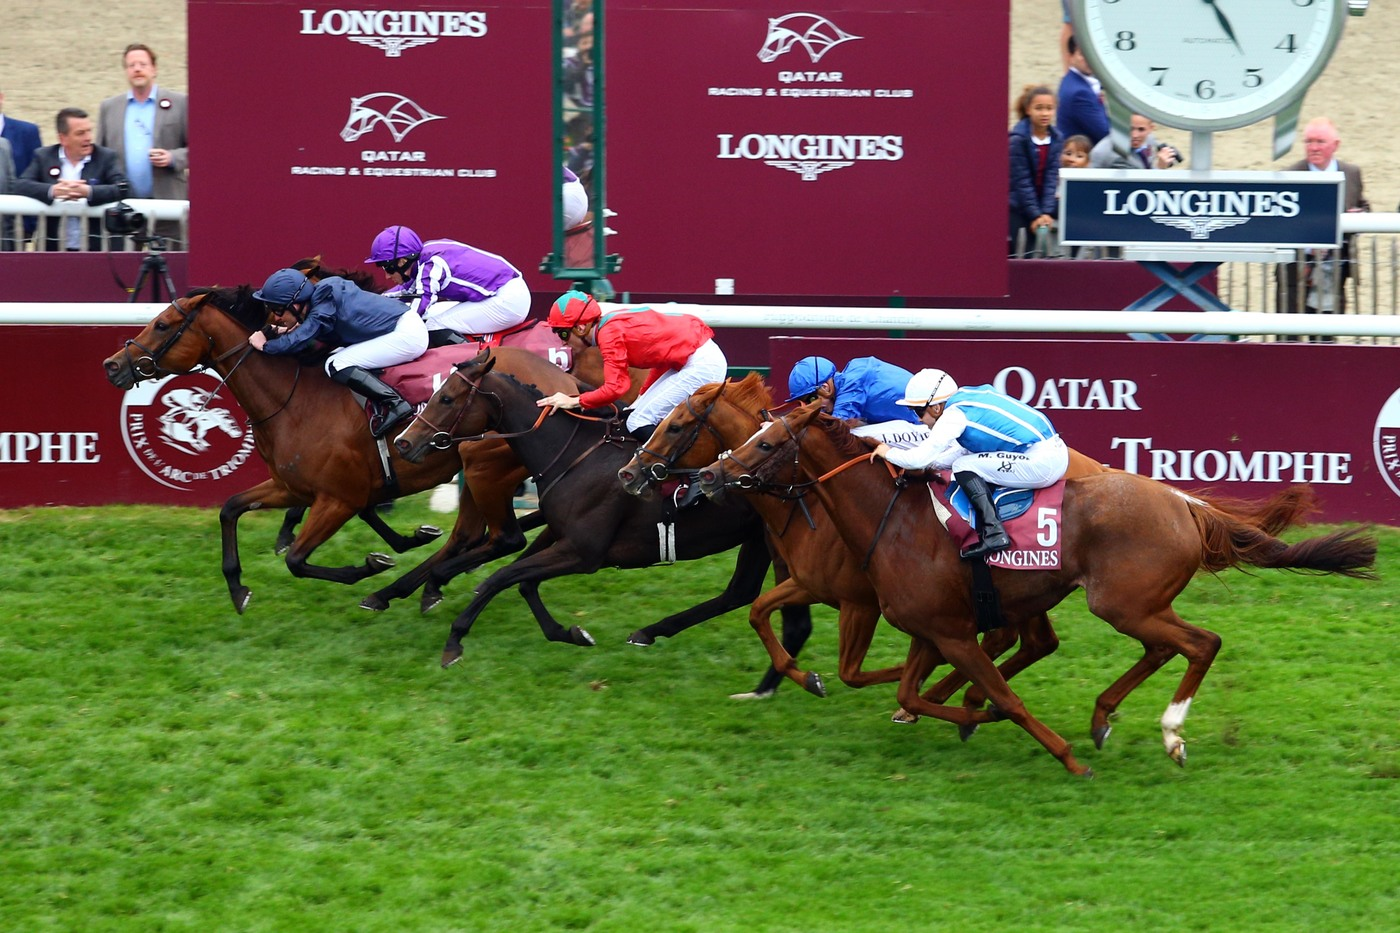 Longines Flat Racing Event: Longines' precision served the prestigious Qatar Prix de l'Arc de Triomphe 2